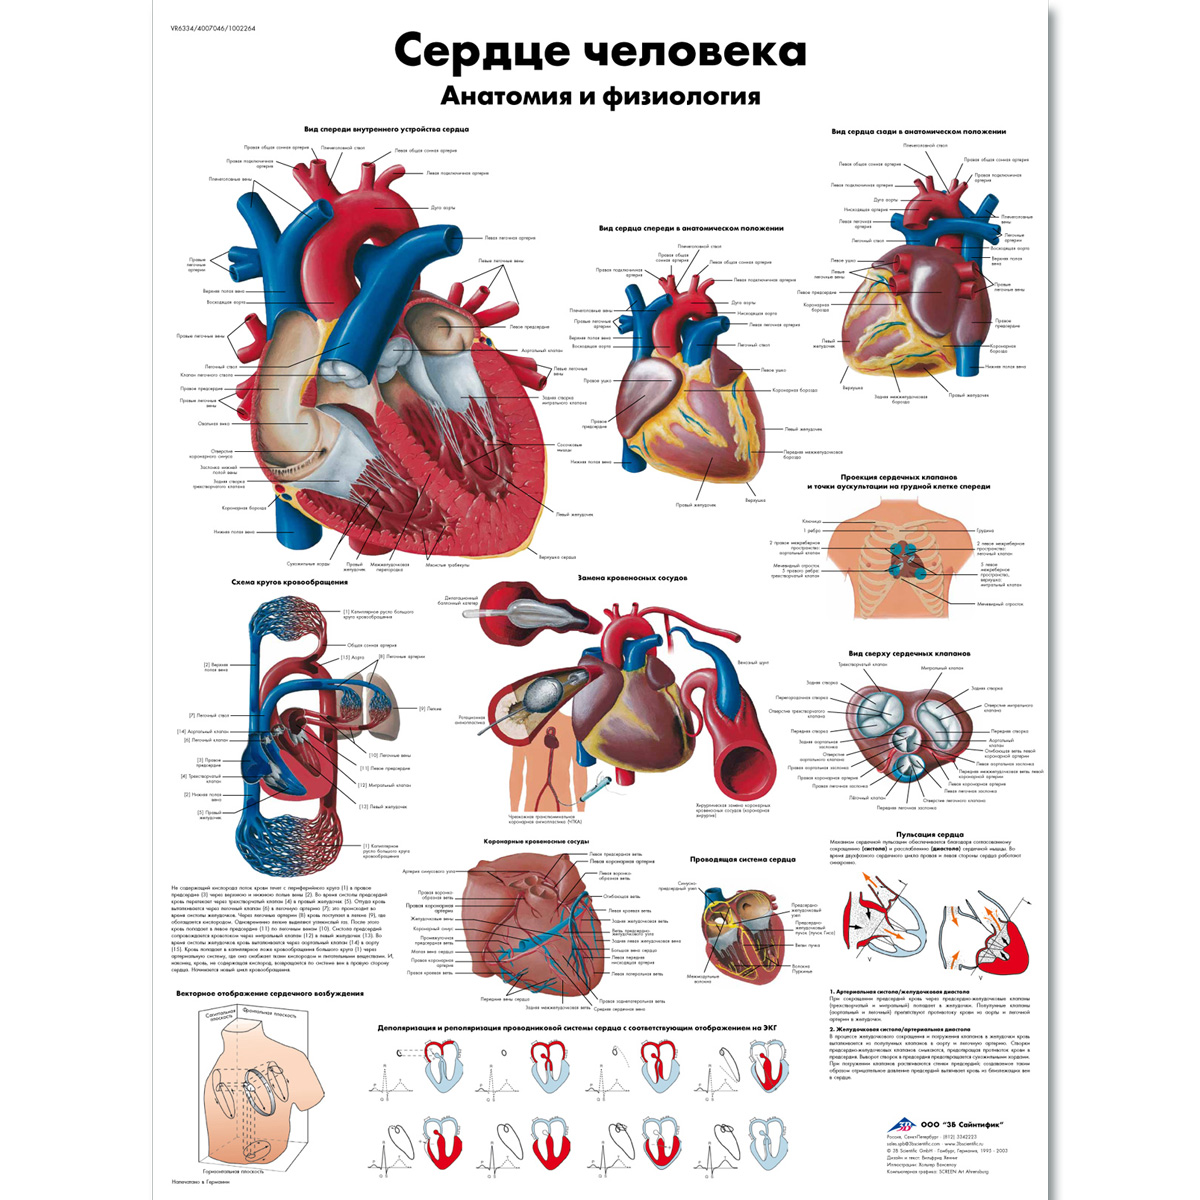 The human heart Chart - Anatomy and Physiology - 1002264 - VR6334L ...